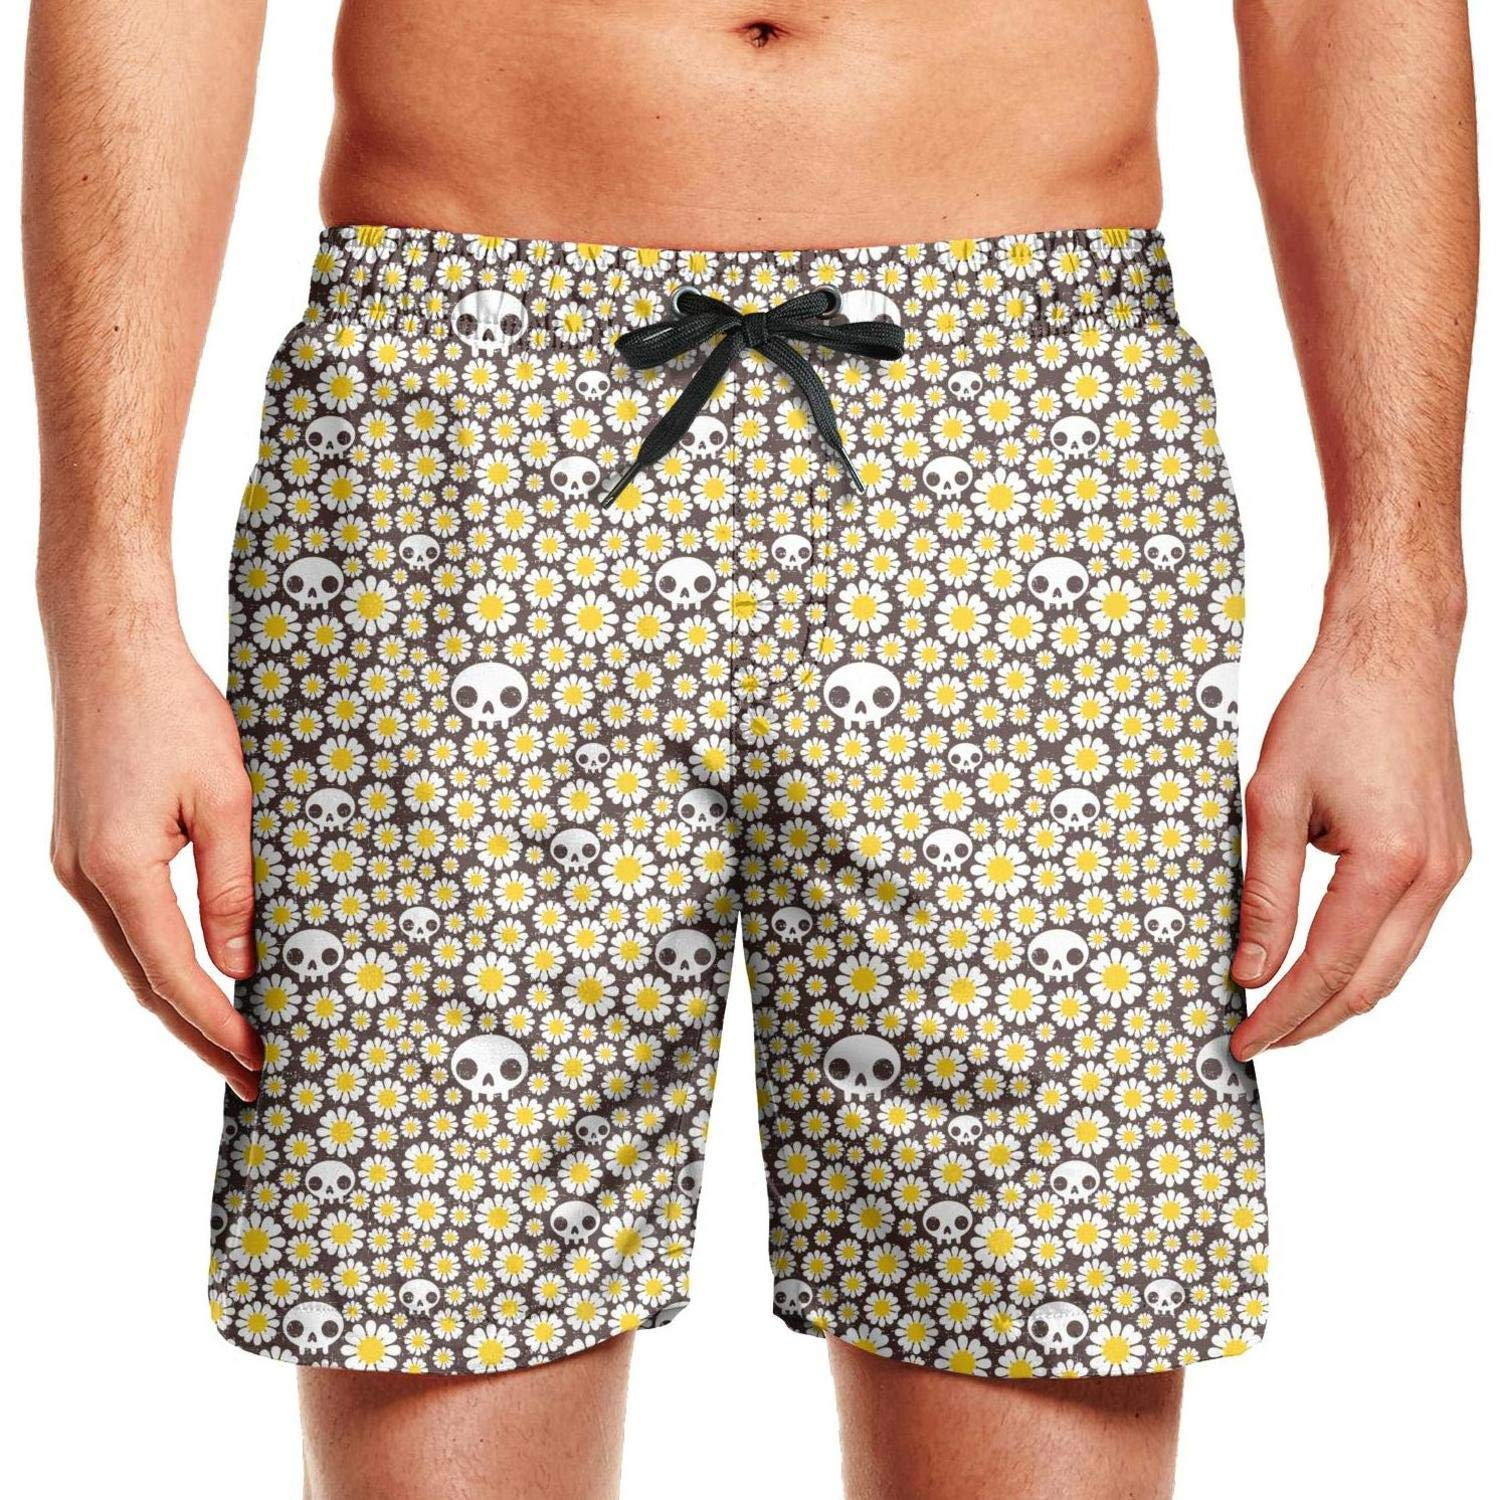 DRORTYY Cool Swim Shorts for Men Bread for Avocado Swimming Trunks Drawstring Mens Beach Shorts Swim Board Shorts